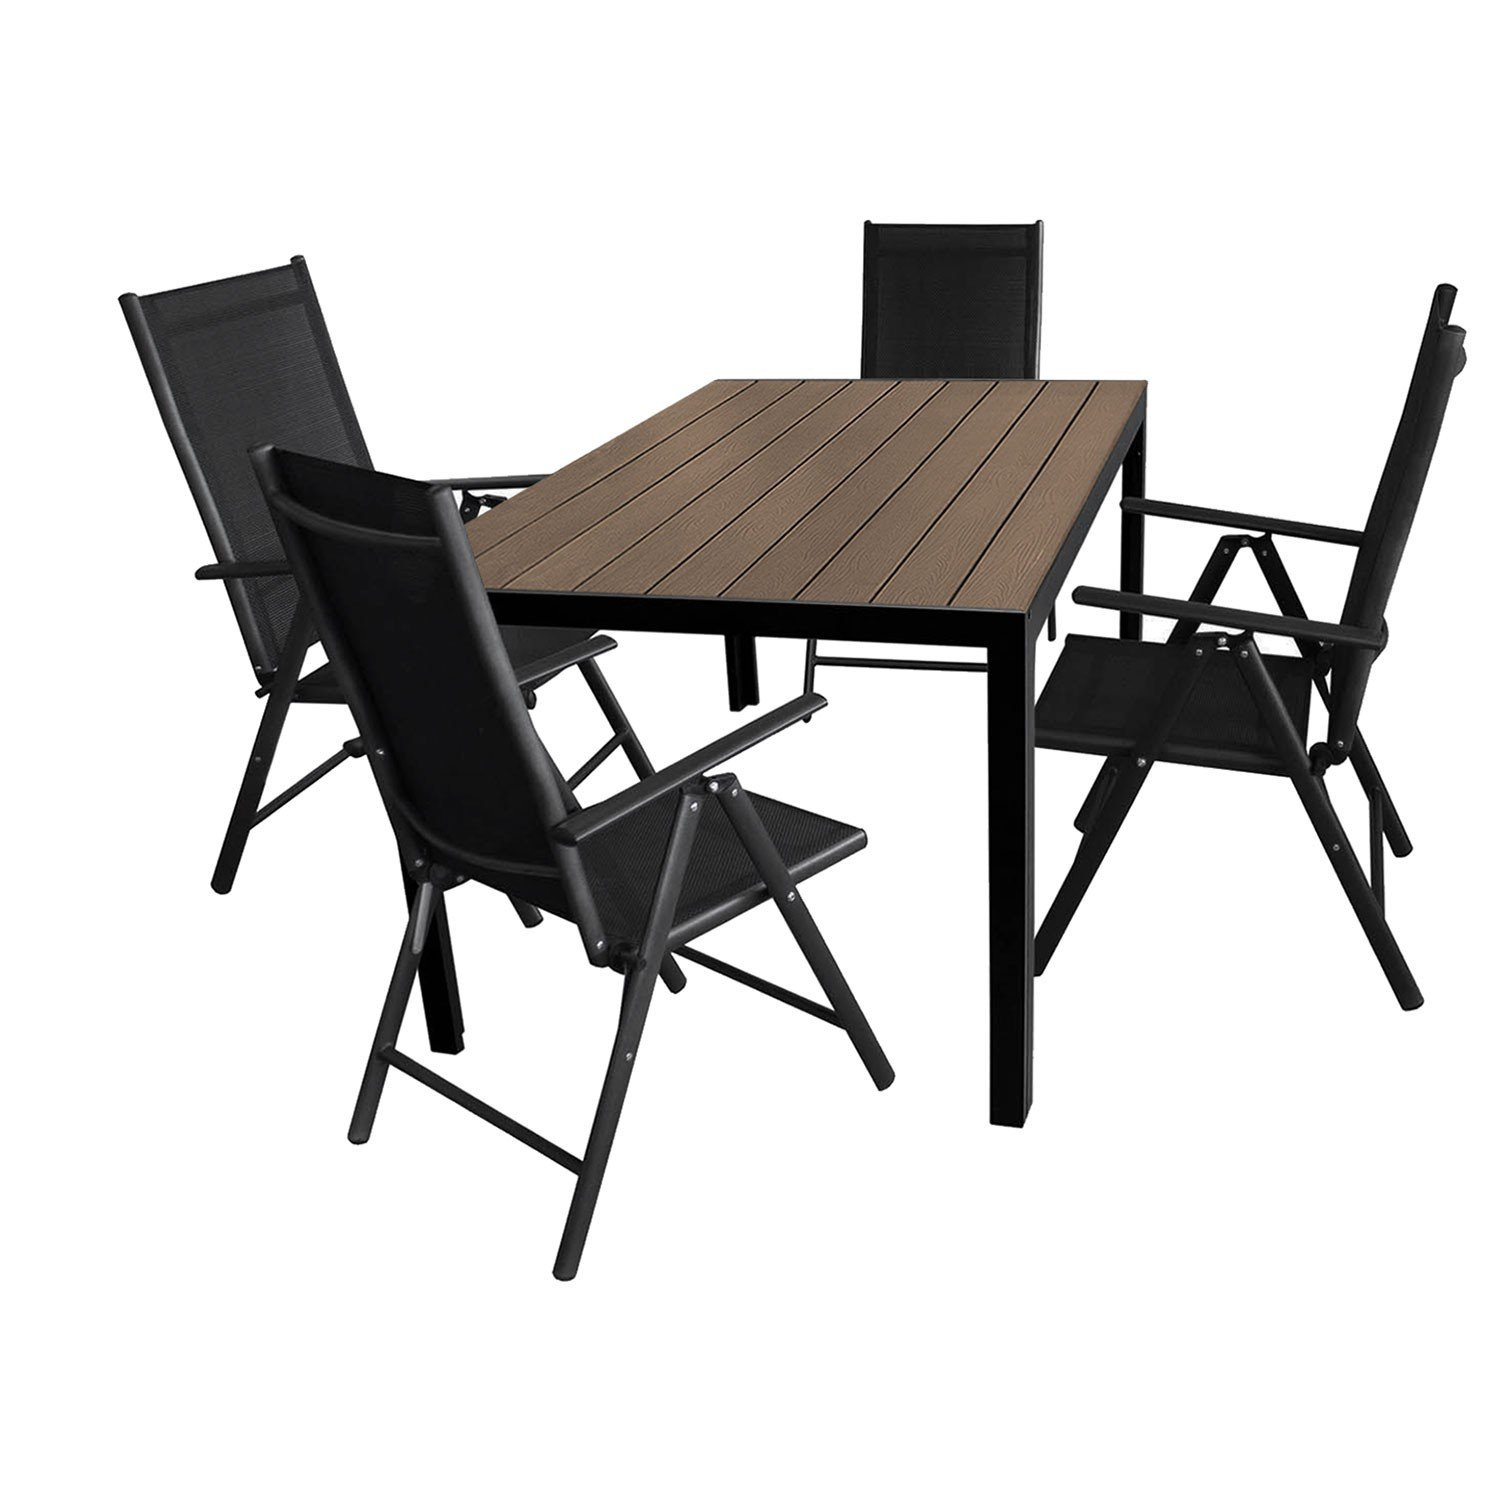 5tlg gartengarnitur aluminium gartentisch 150x90cm mit. Black Bedroom Furniture Sets. Home Design Ideas